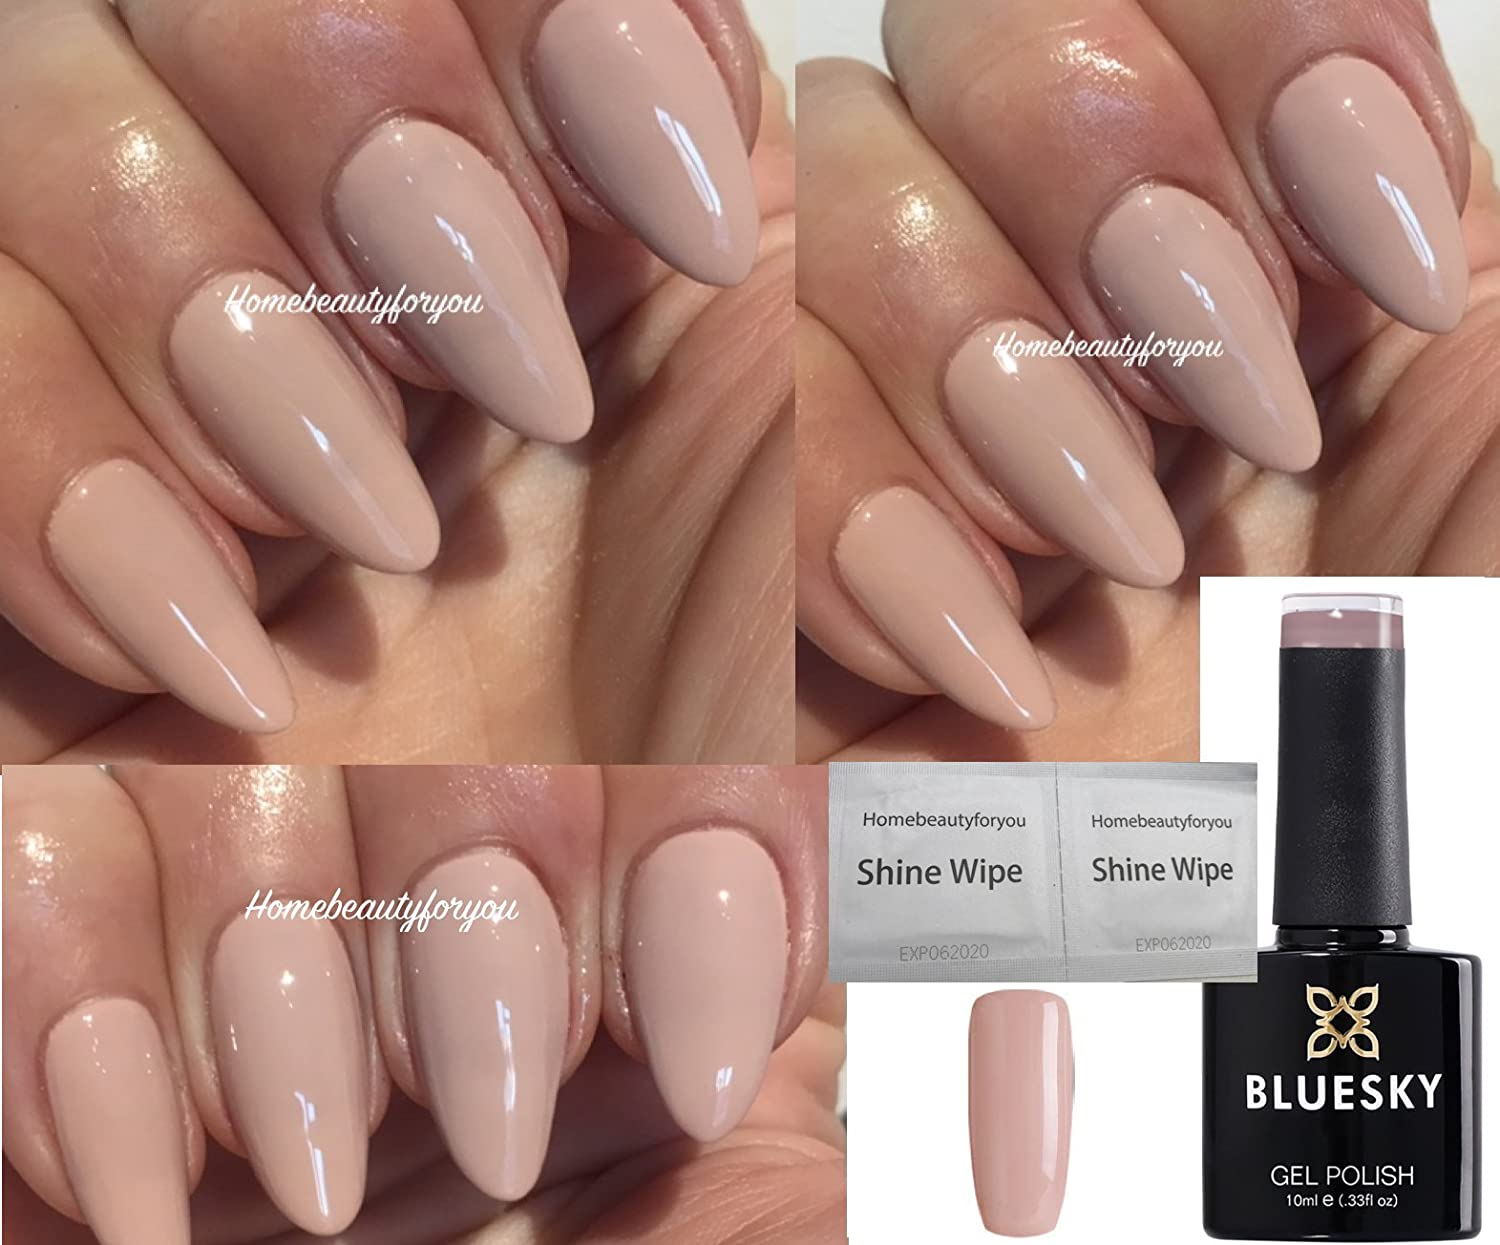 Bluesky Bare Nude Light Beige Limited Edition Nail Gel Polish UV LED Soak Off 10ml PLUS 2 Homebeautyforyou Shine Wipes LTD